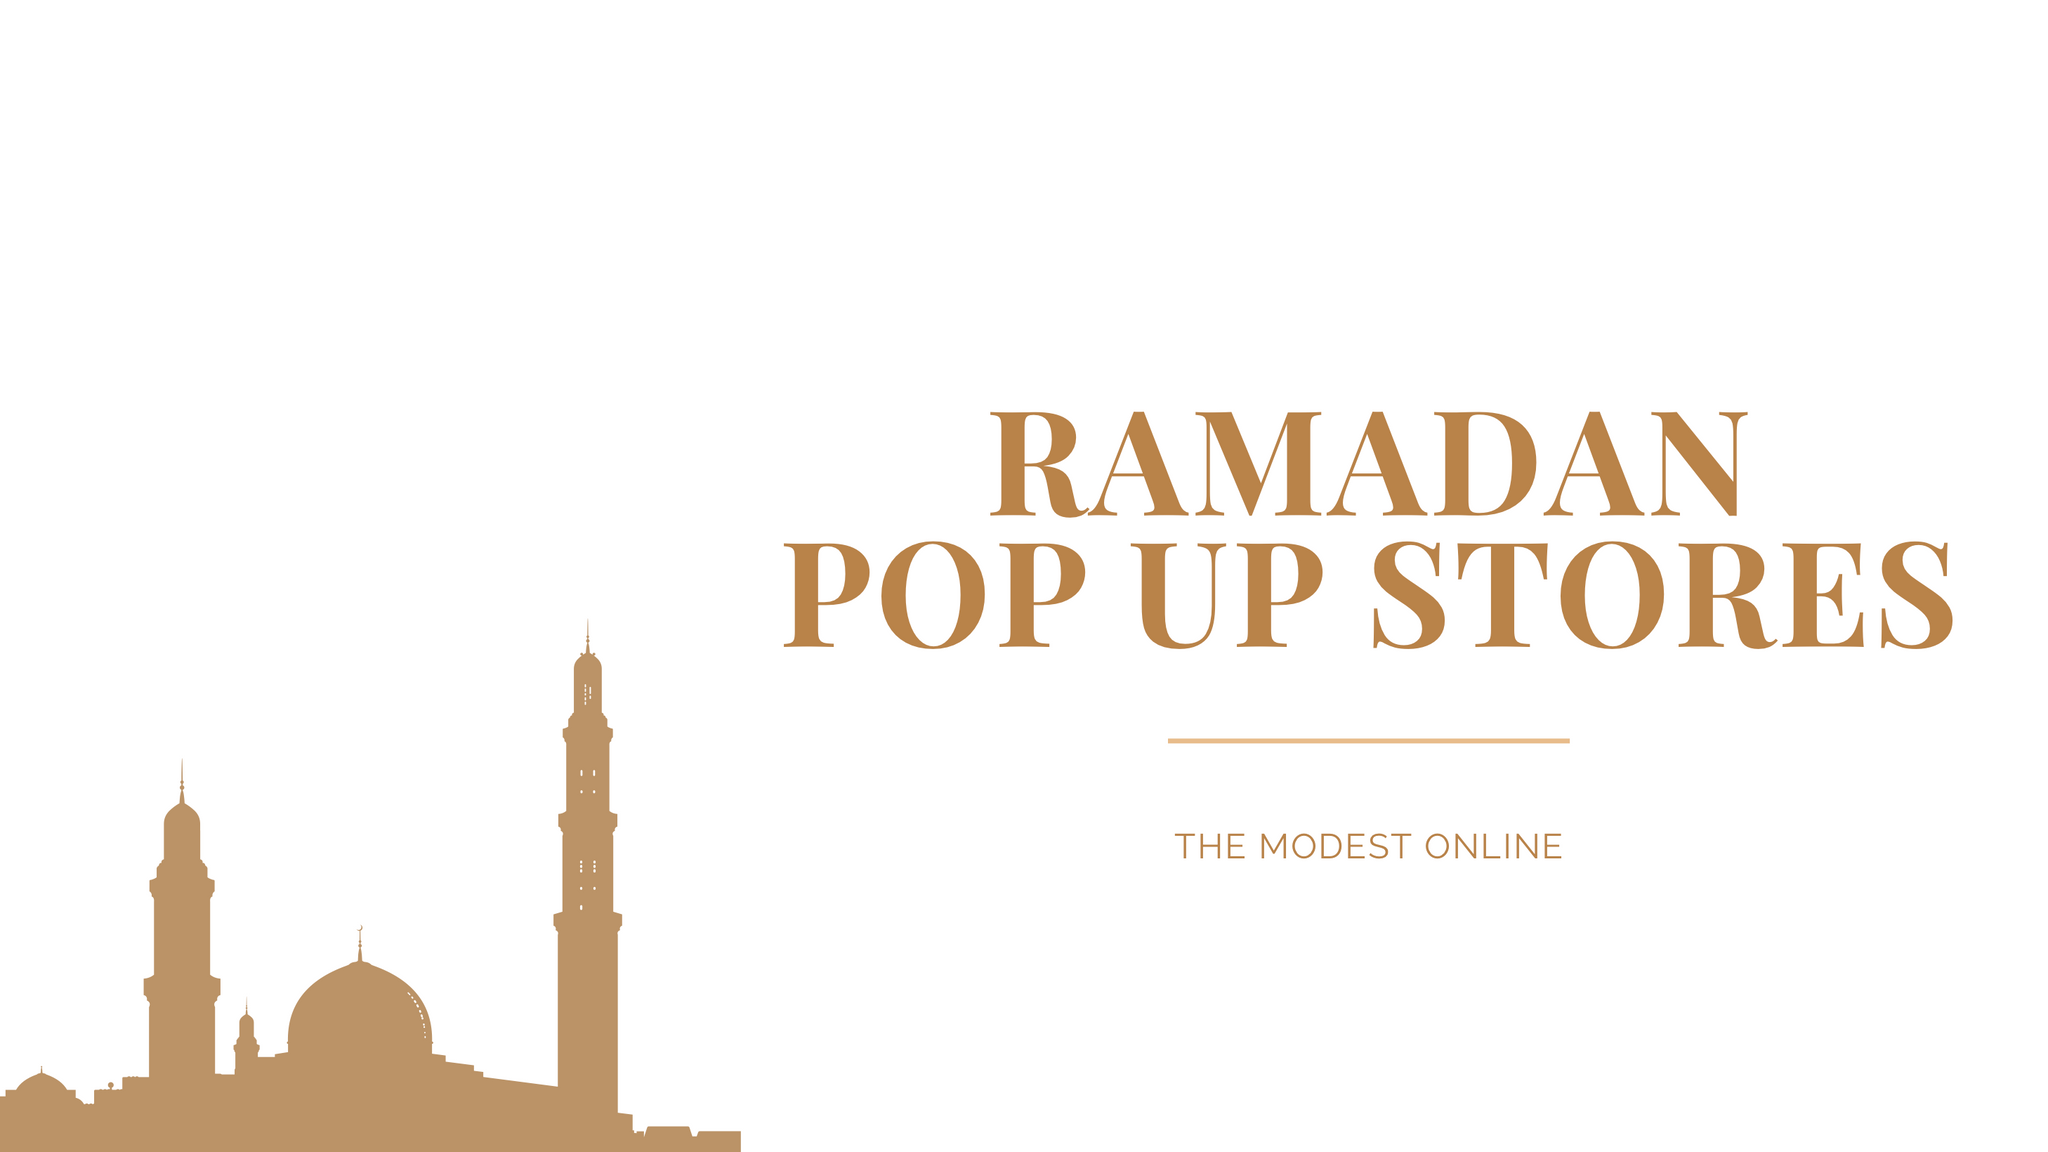 Ramadan Pop Up Stores Helsinki The Modest Online